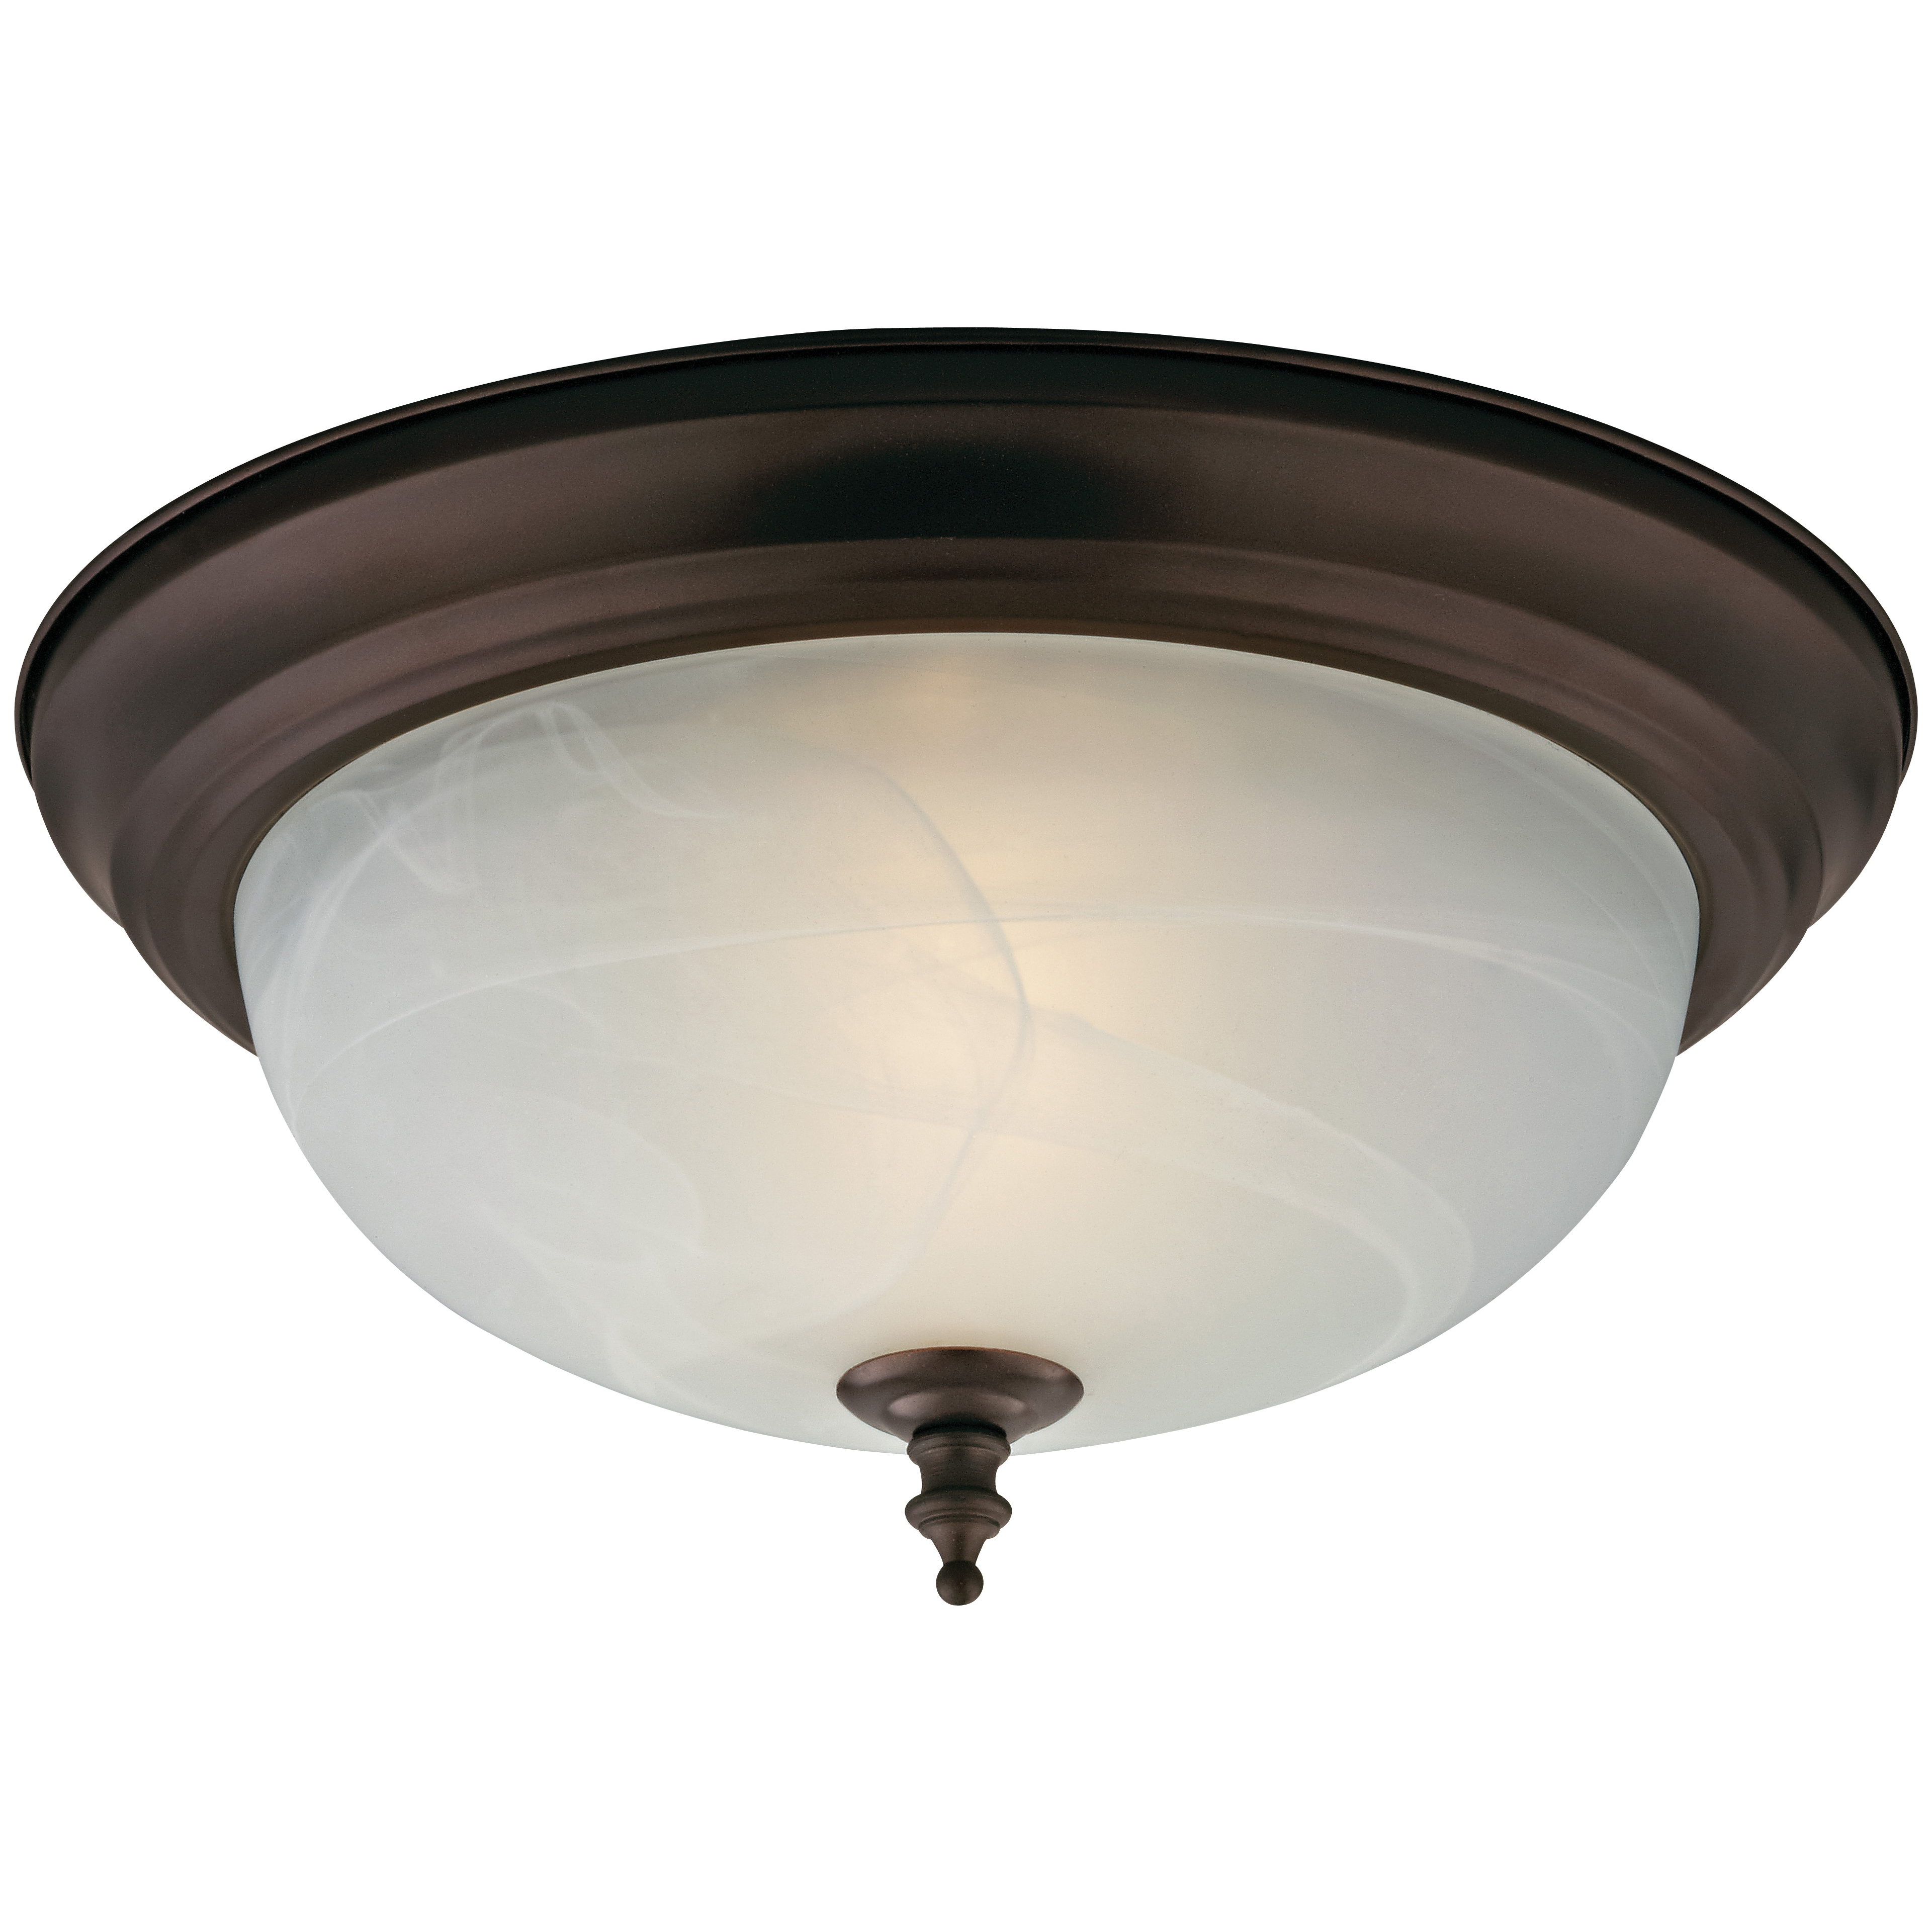 Picture of Boston Harbor F51WH02-1005-ORB Ceiling Light Fixture, 2-Lamp, CFL Lamp, Oil-Rubbed Bronze Fixture